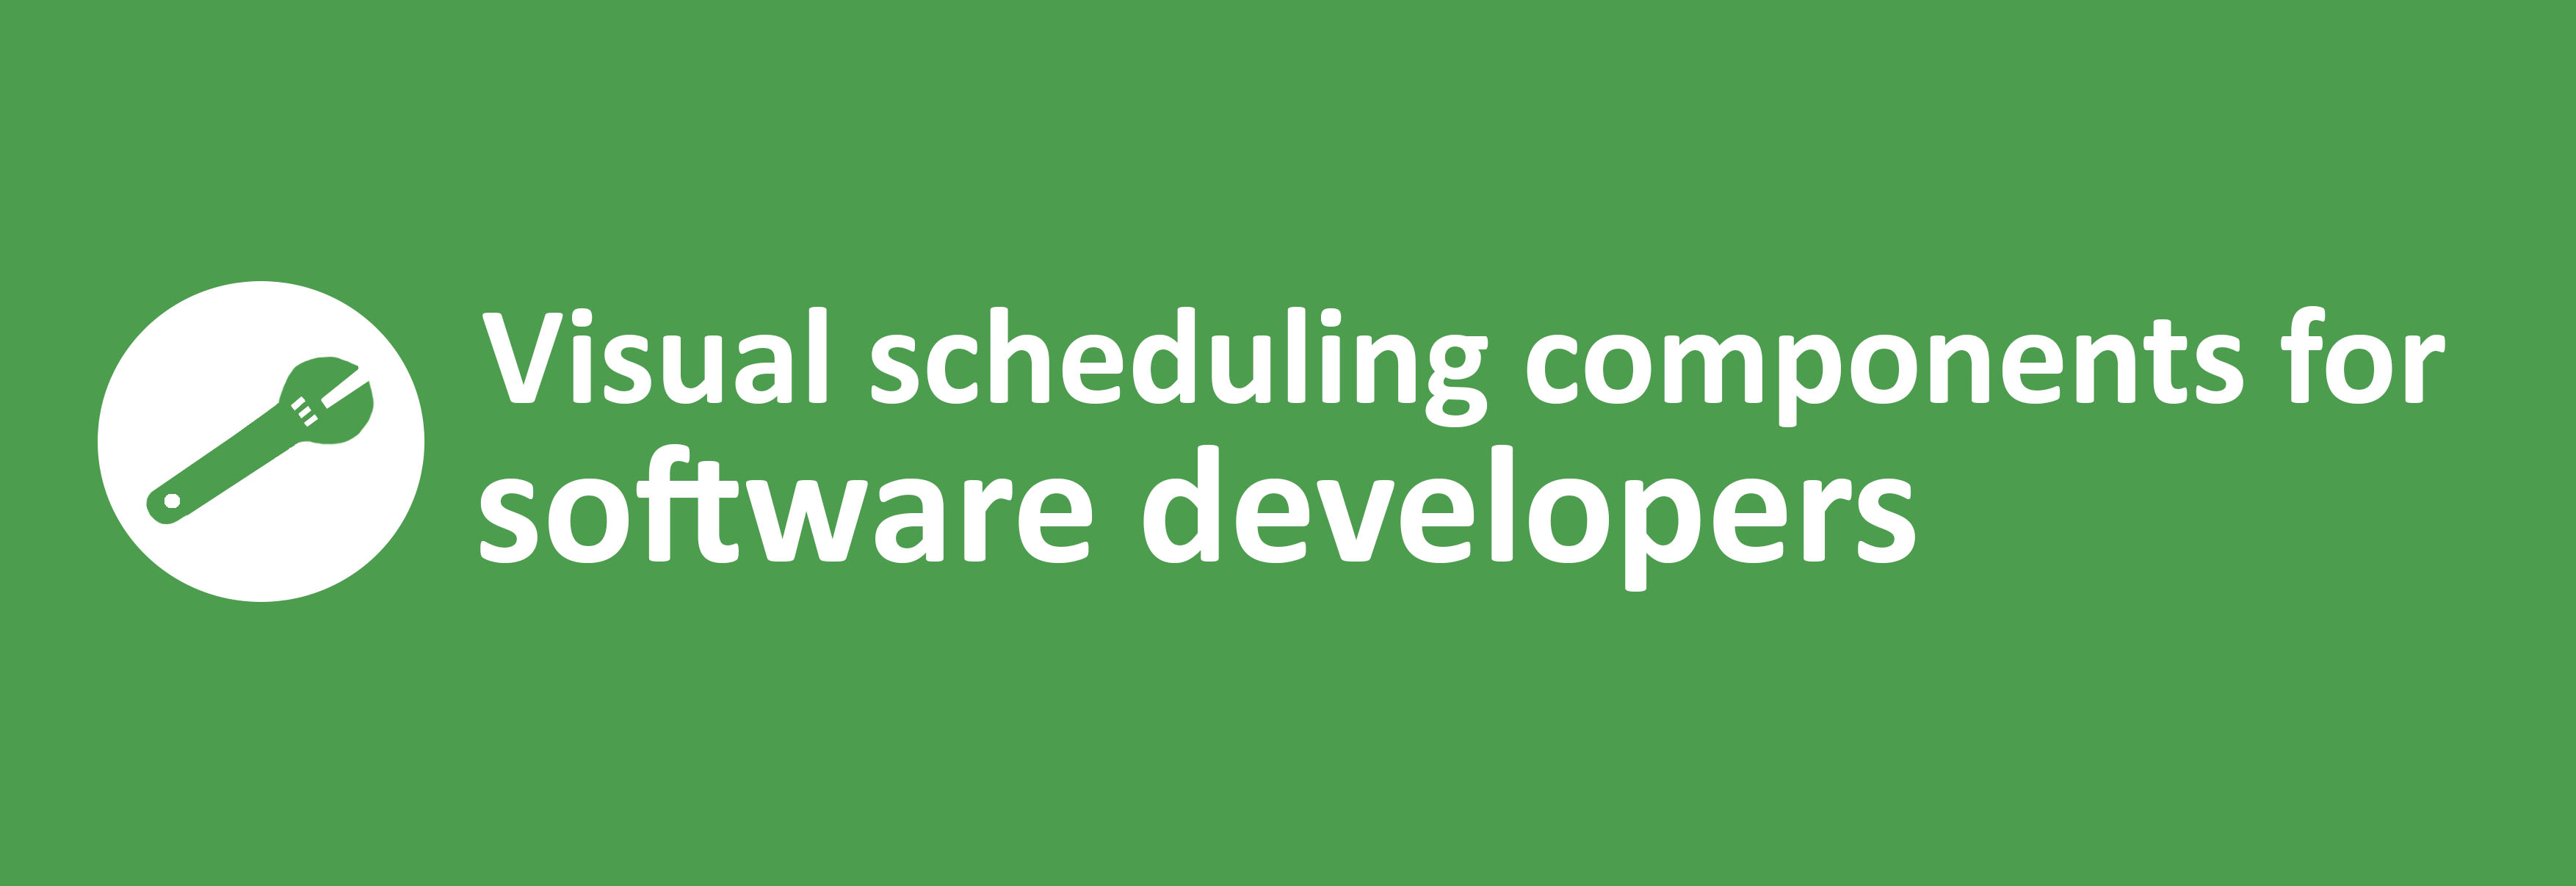 visual scheduling components for software developers